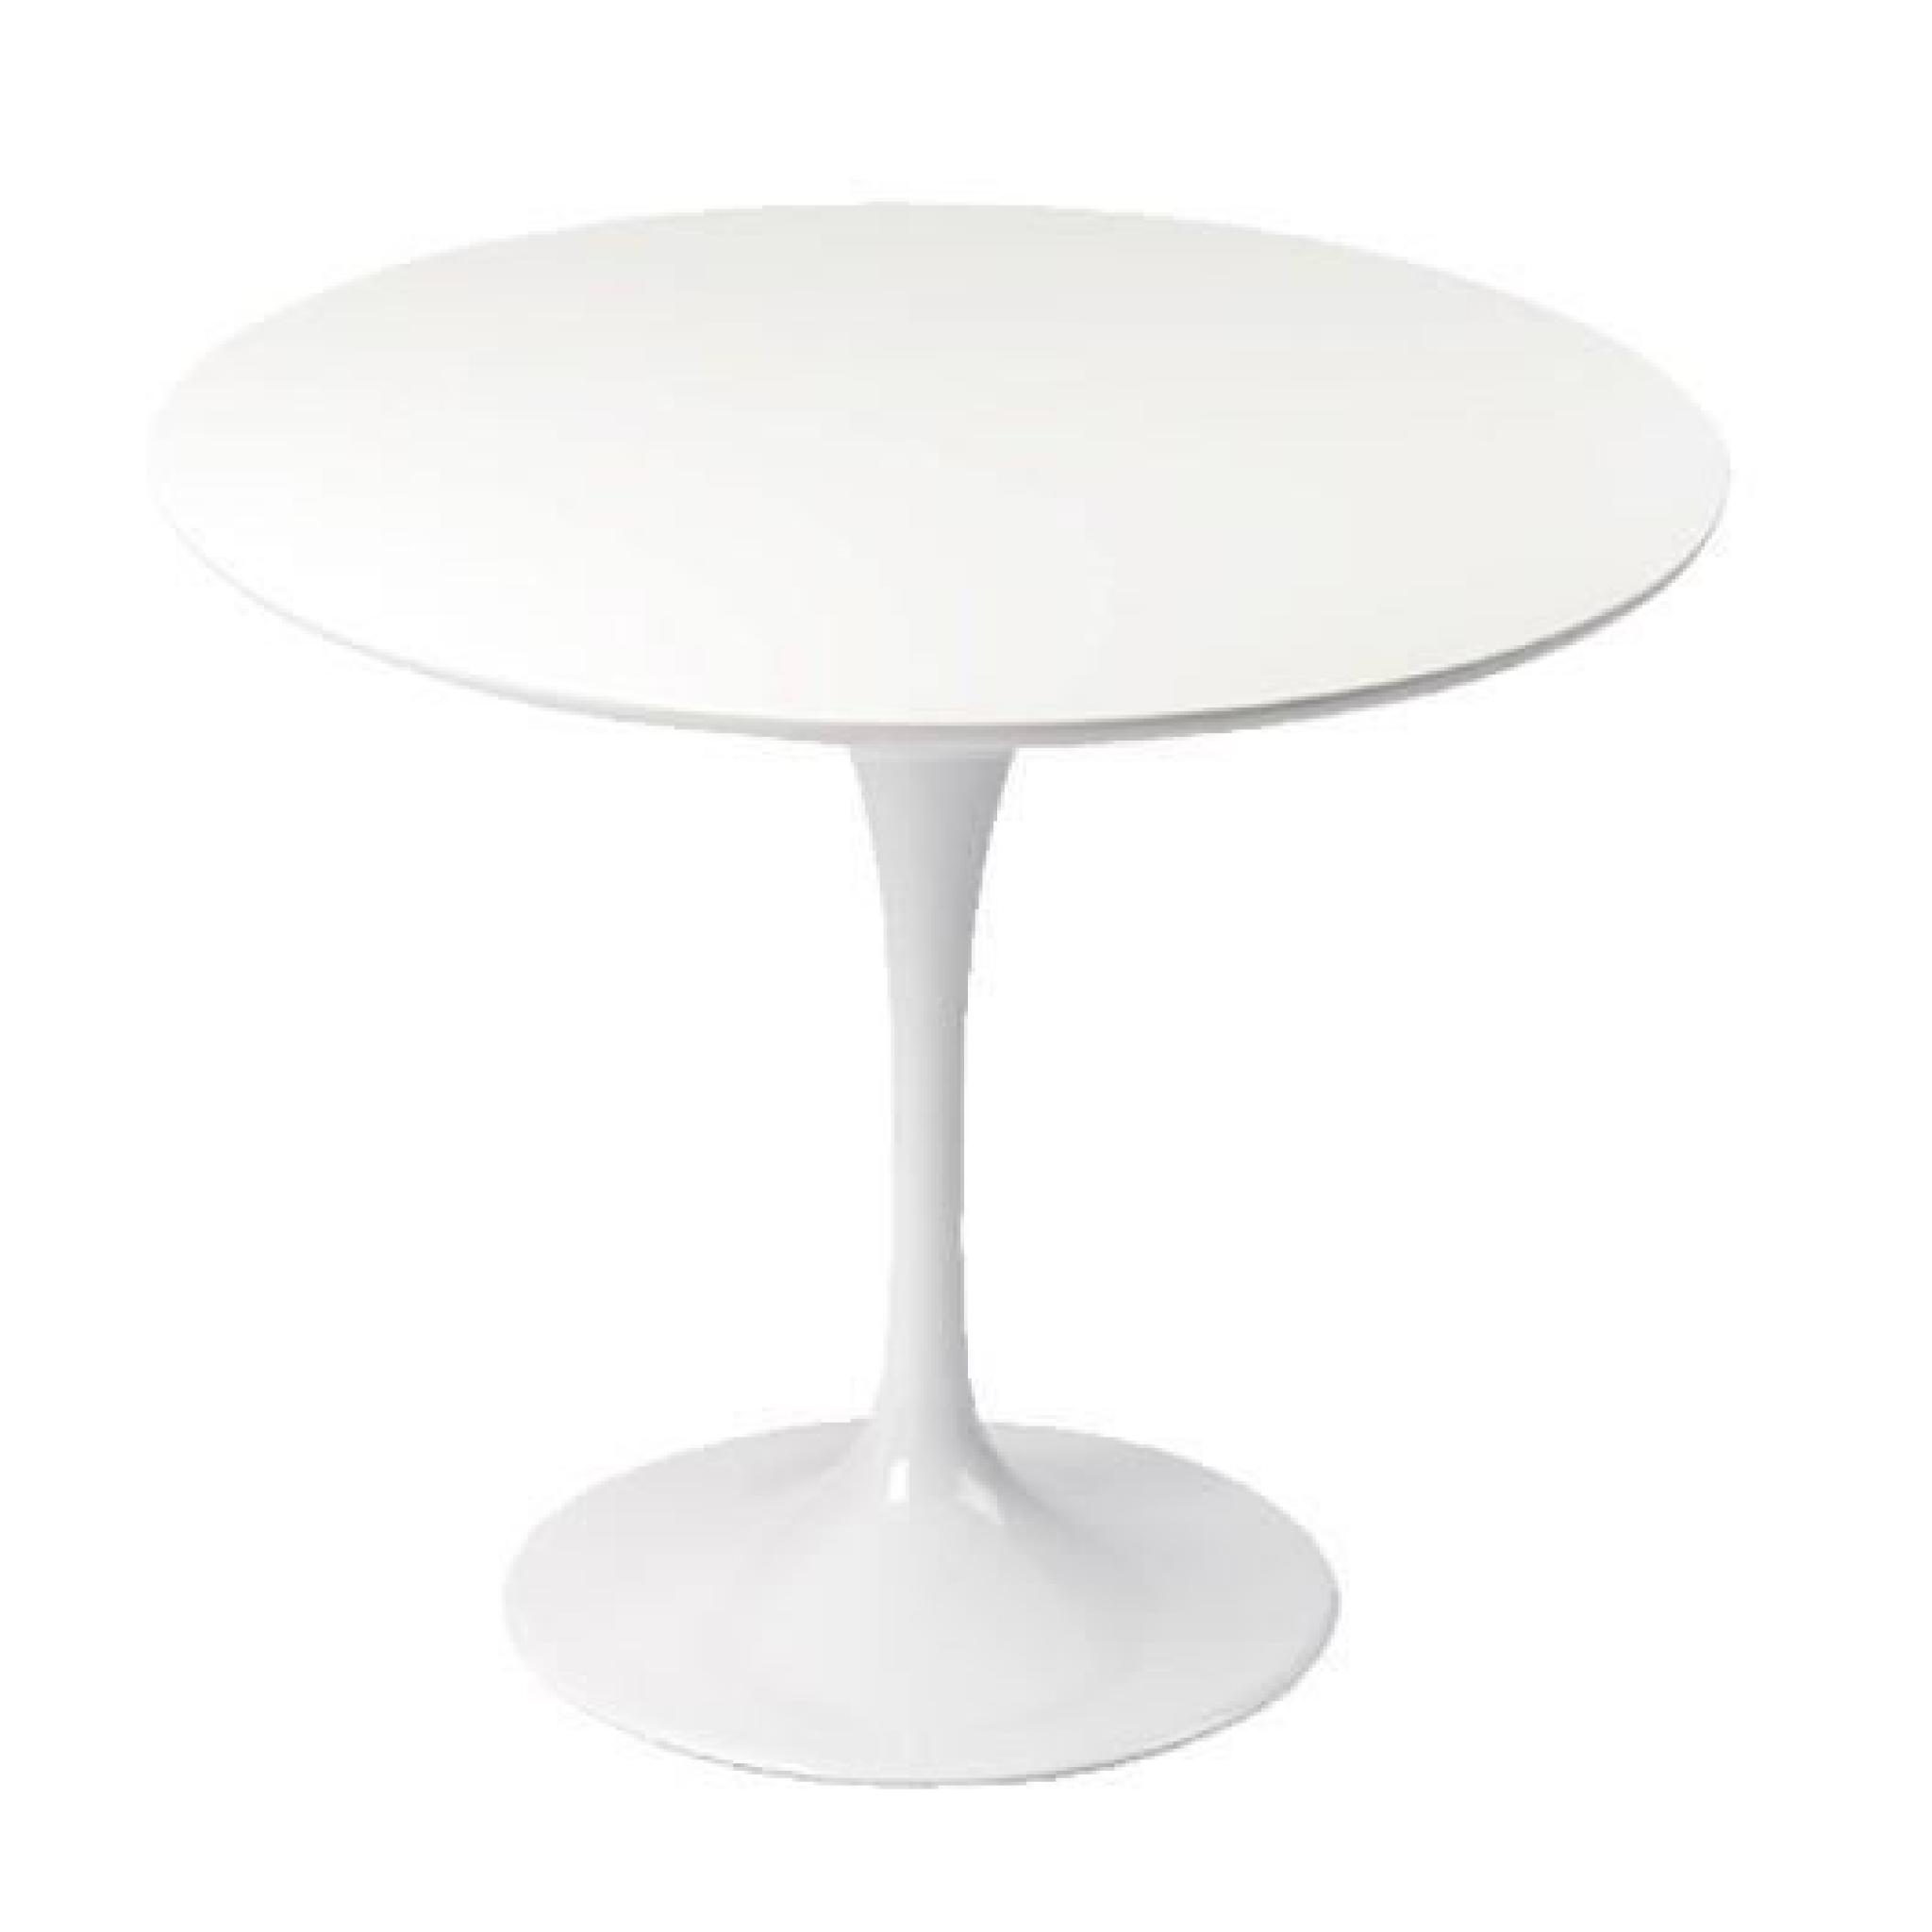 Table Tulipe Blanche Table Design Ronde 90cm Blanche Tulipe Achat Vente